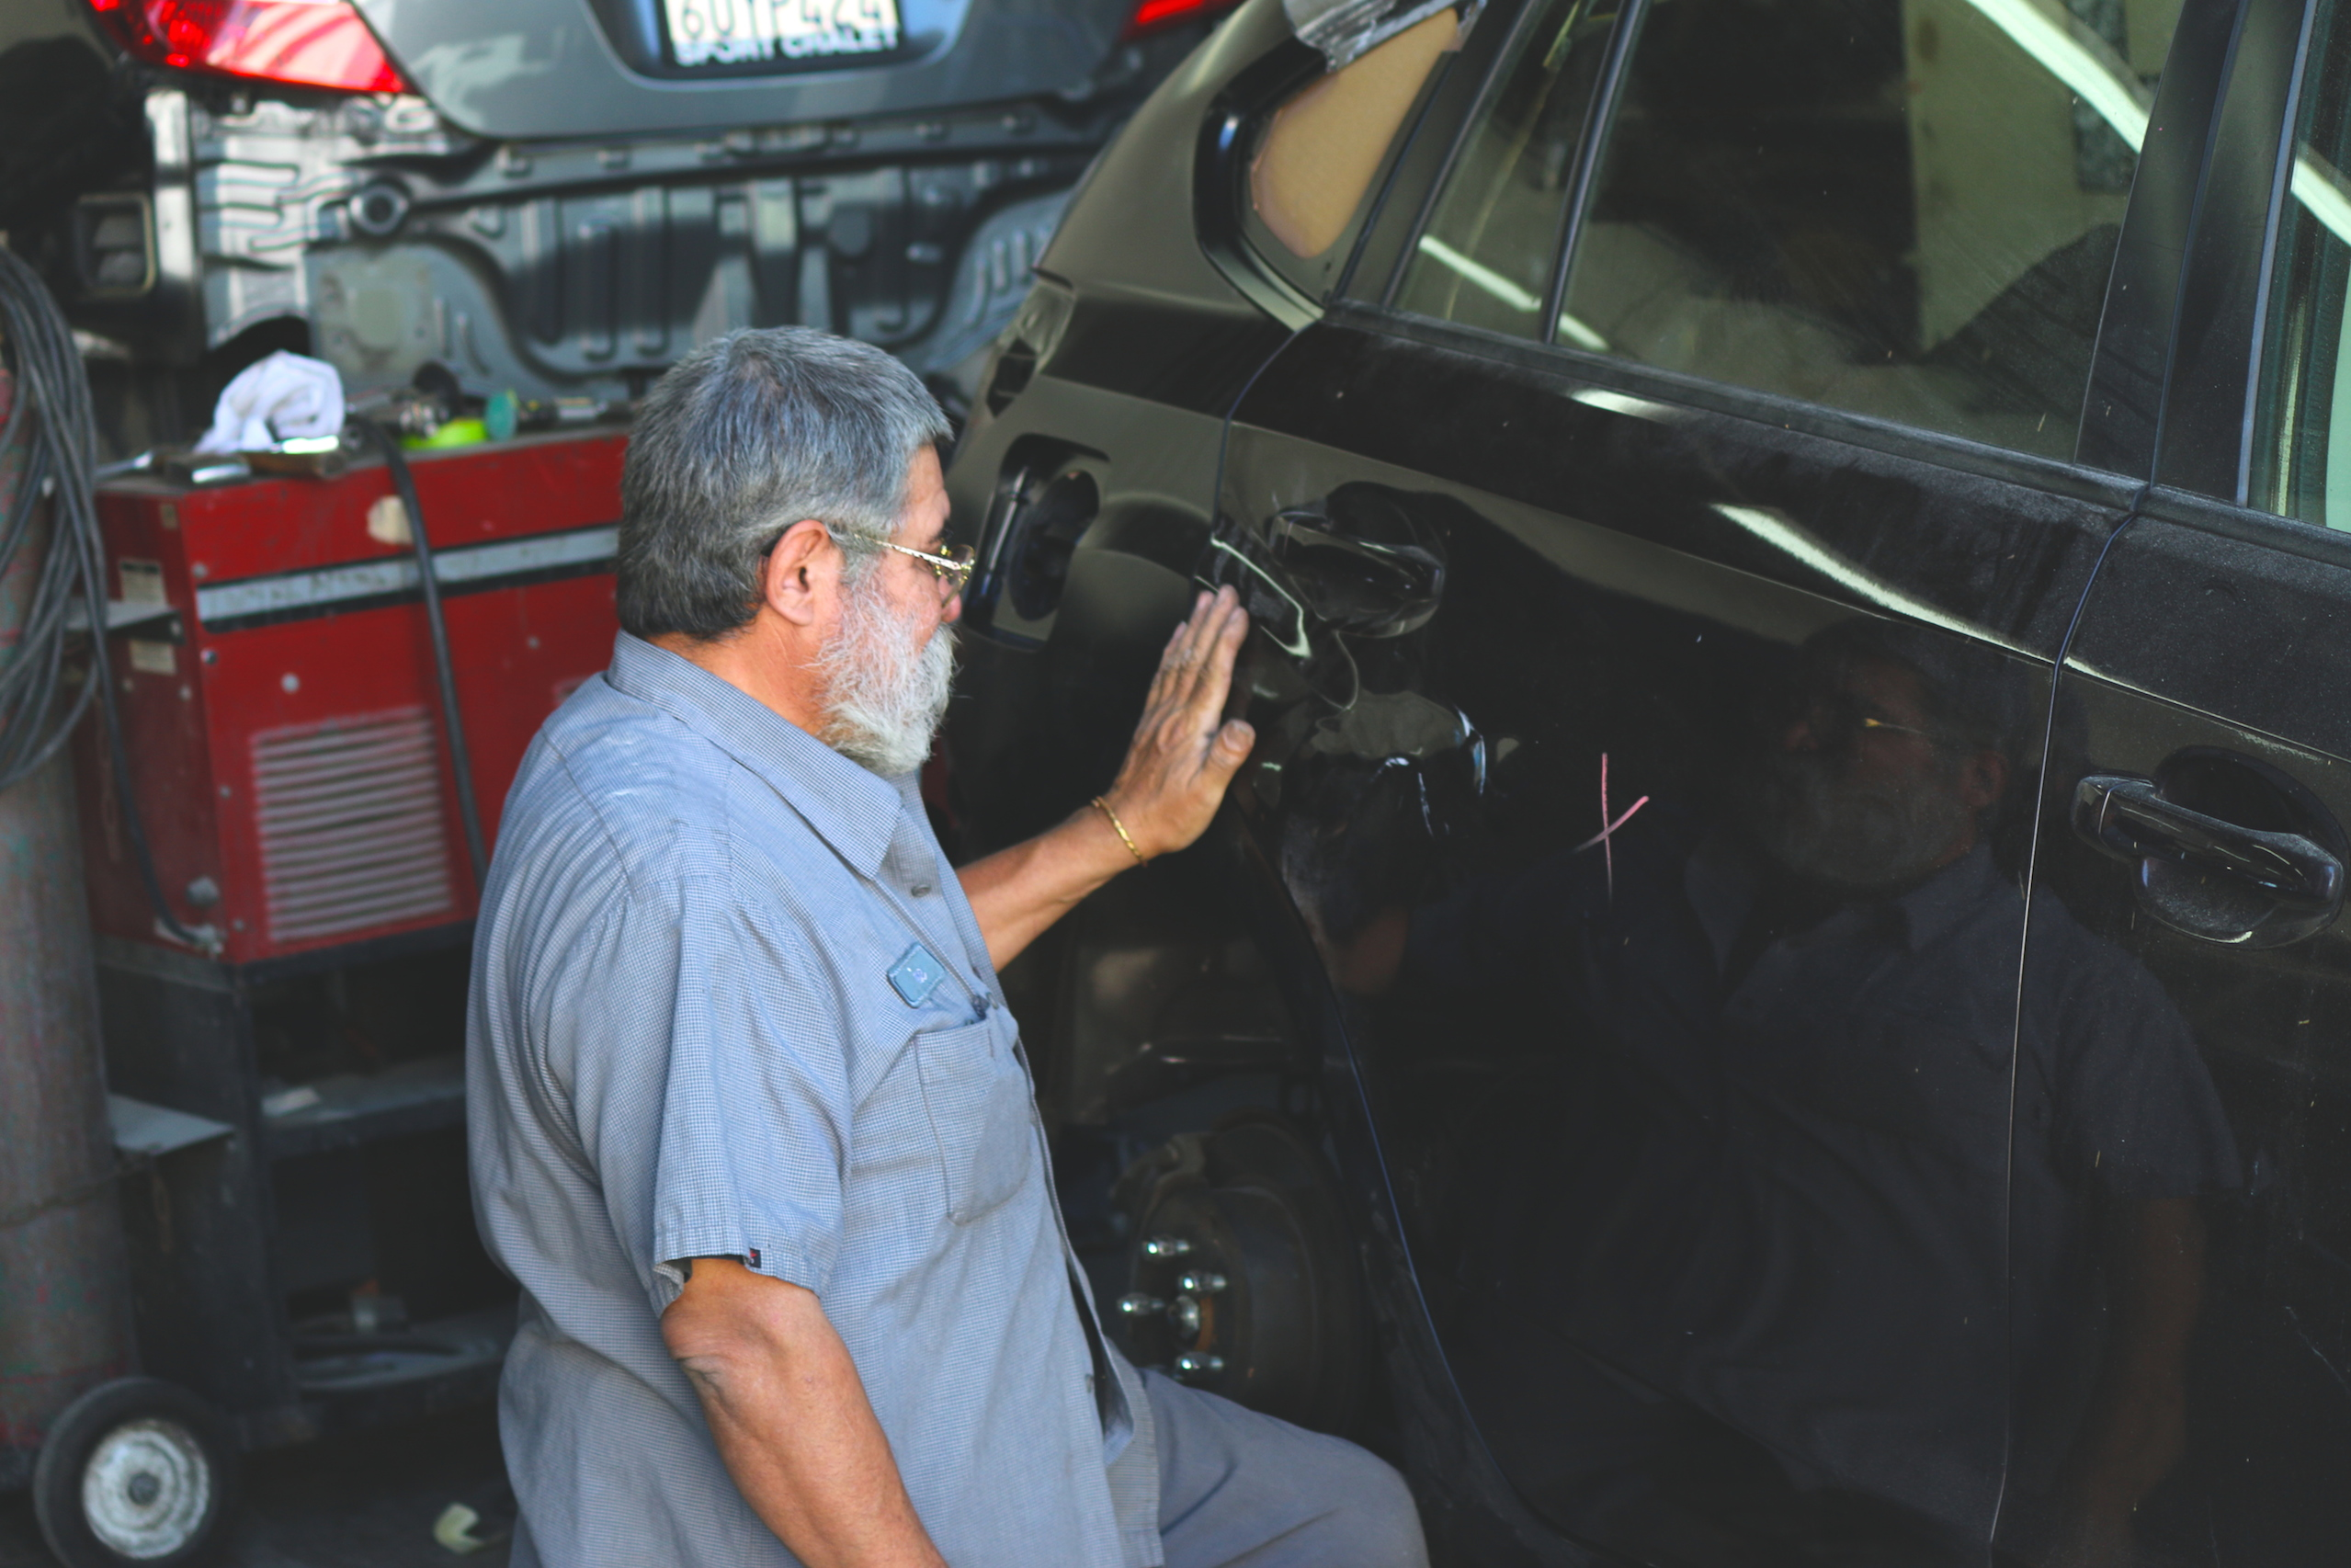 Auto Body Collision Repair in Pasadena - McCurdy Body Works